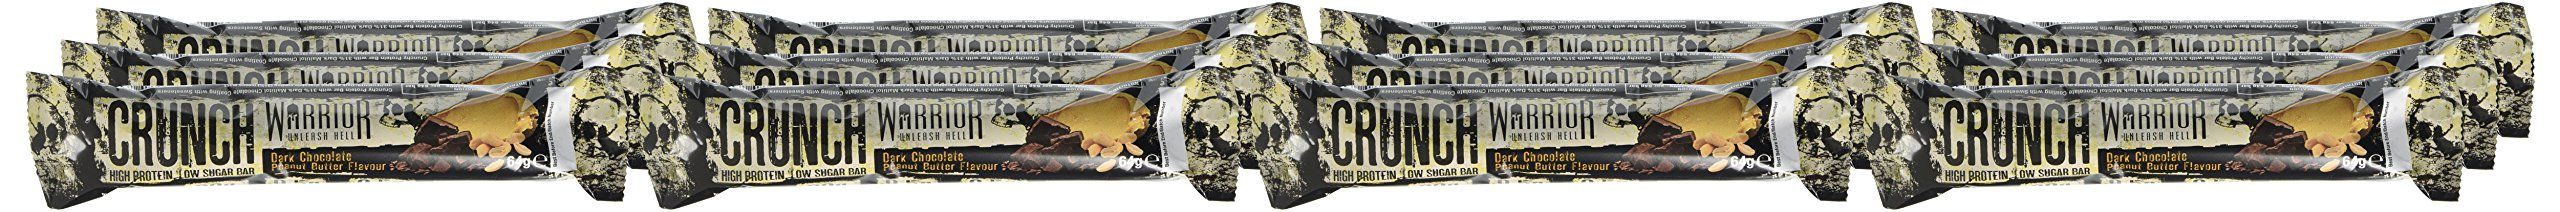 Warrior Crunch High Protein Low Carb Bar, 64 g, Pack of 12 2